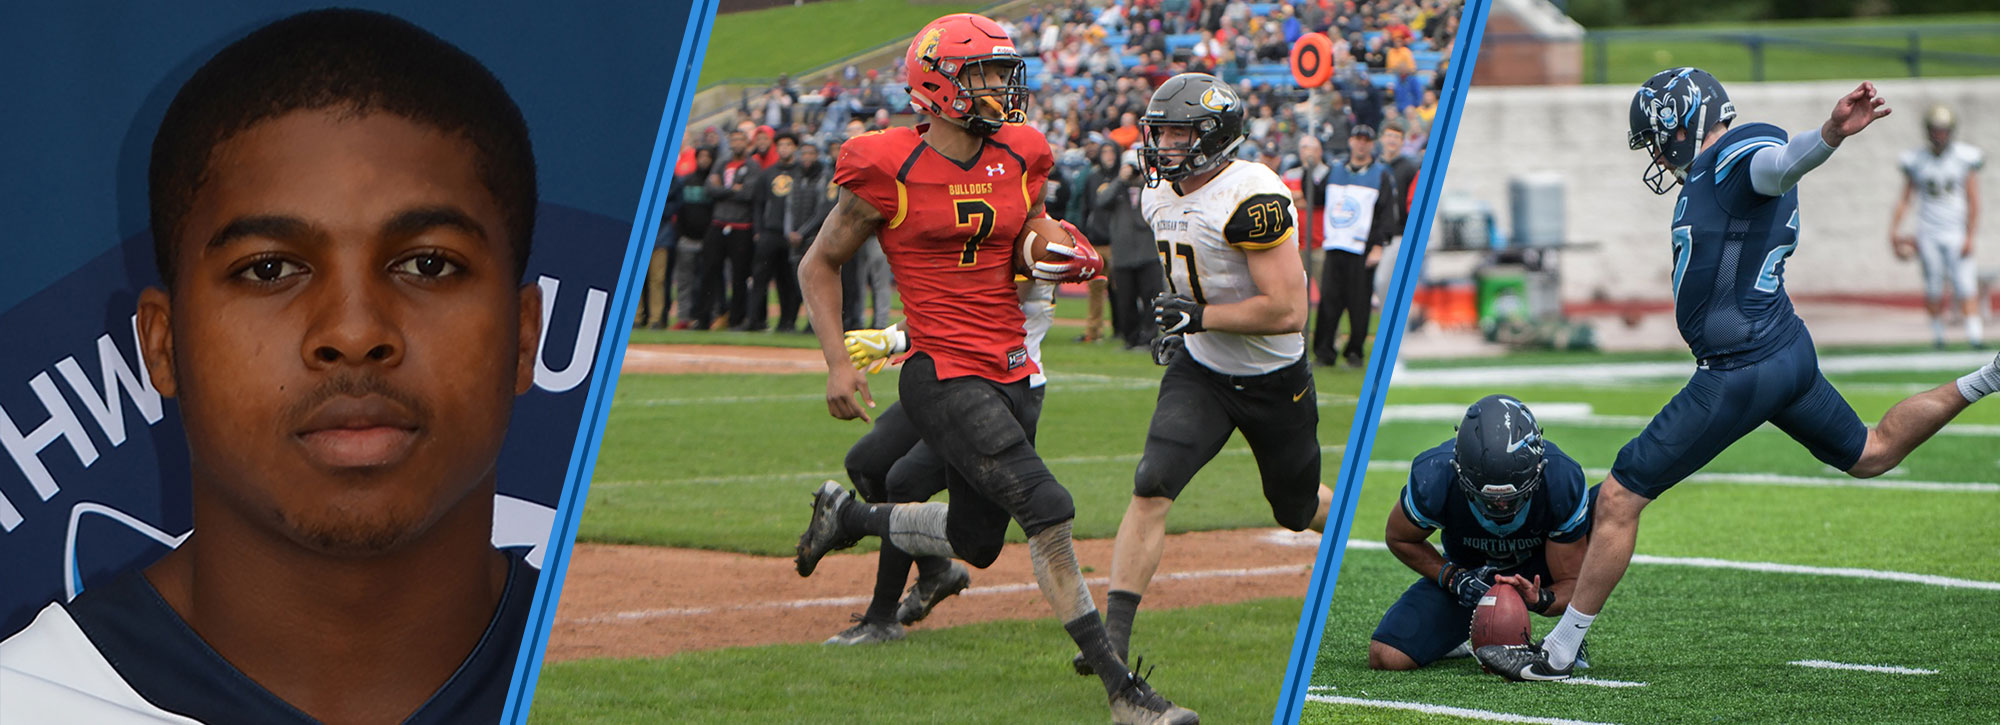 Ferris State's Campbell, Northwood's Williamson & Riser Collect GLIAC Football Player of the Week Honors